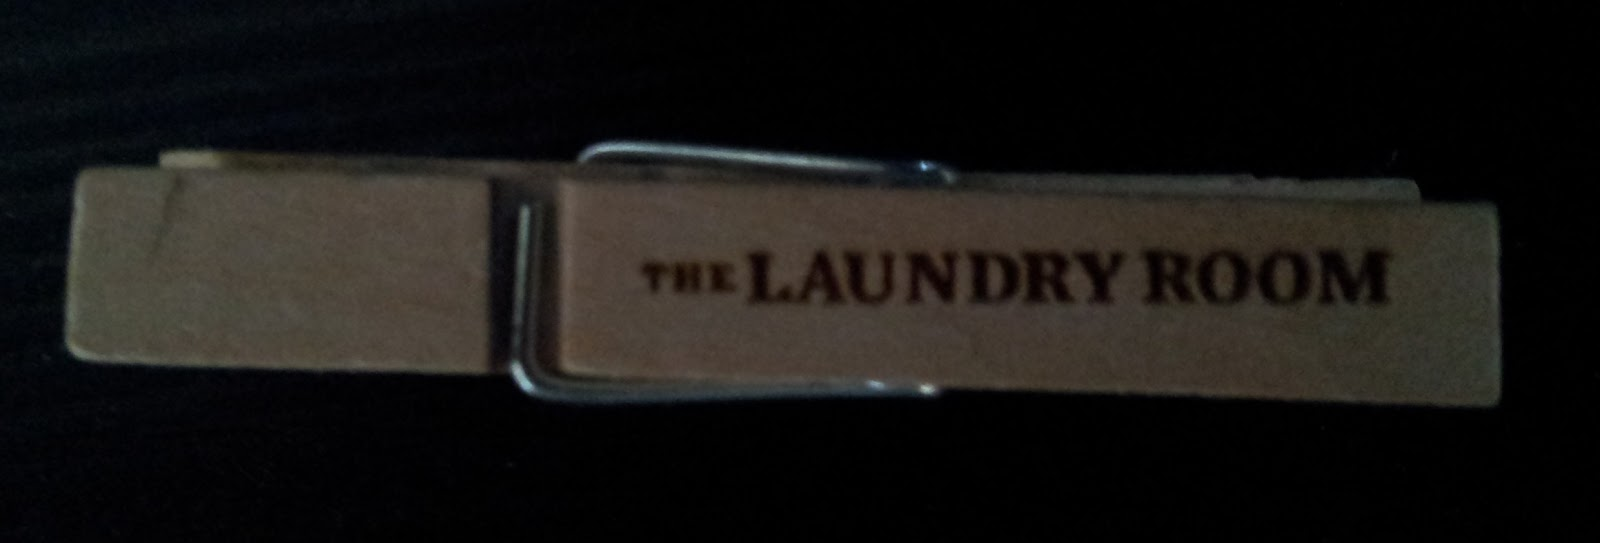 The laundry room las vegas reservation phone number ask for Laundry room las vegas phone number